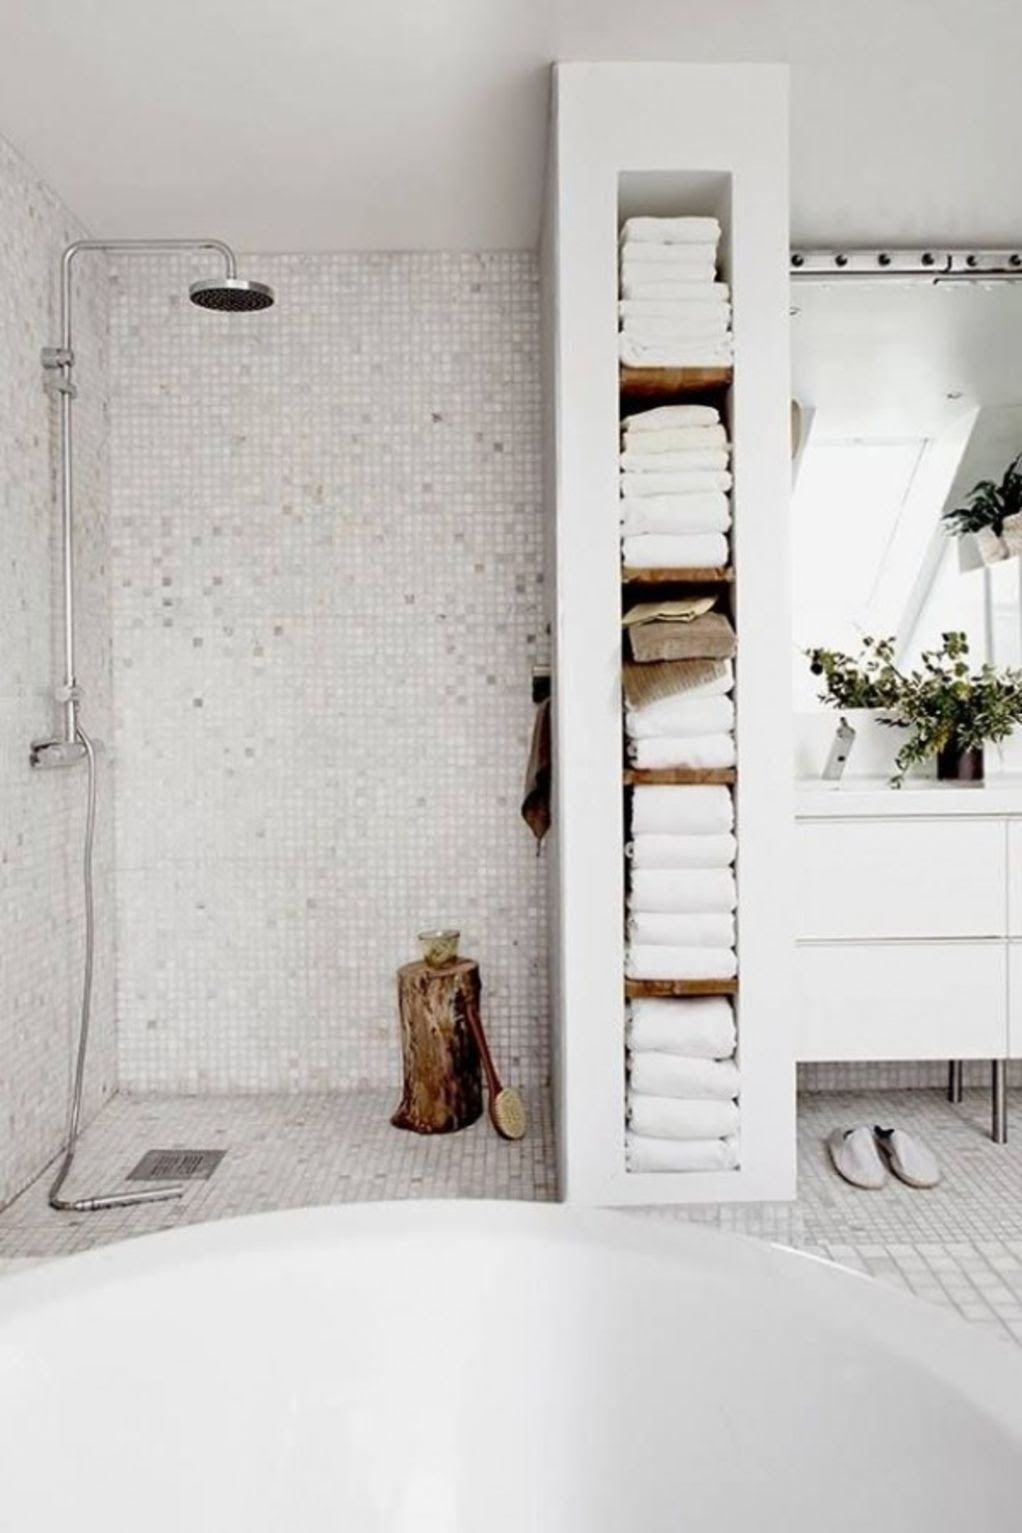 50 Perfectly Minimal Bathrooms To Use For Inspiration | UltraLinx ...